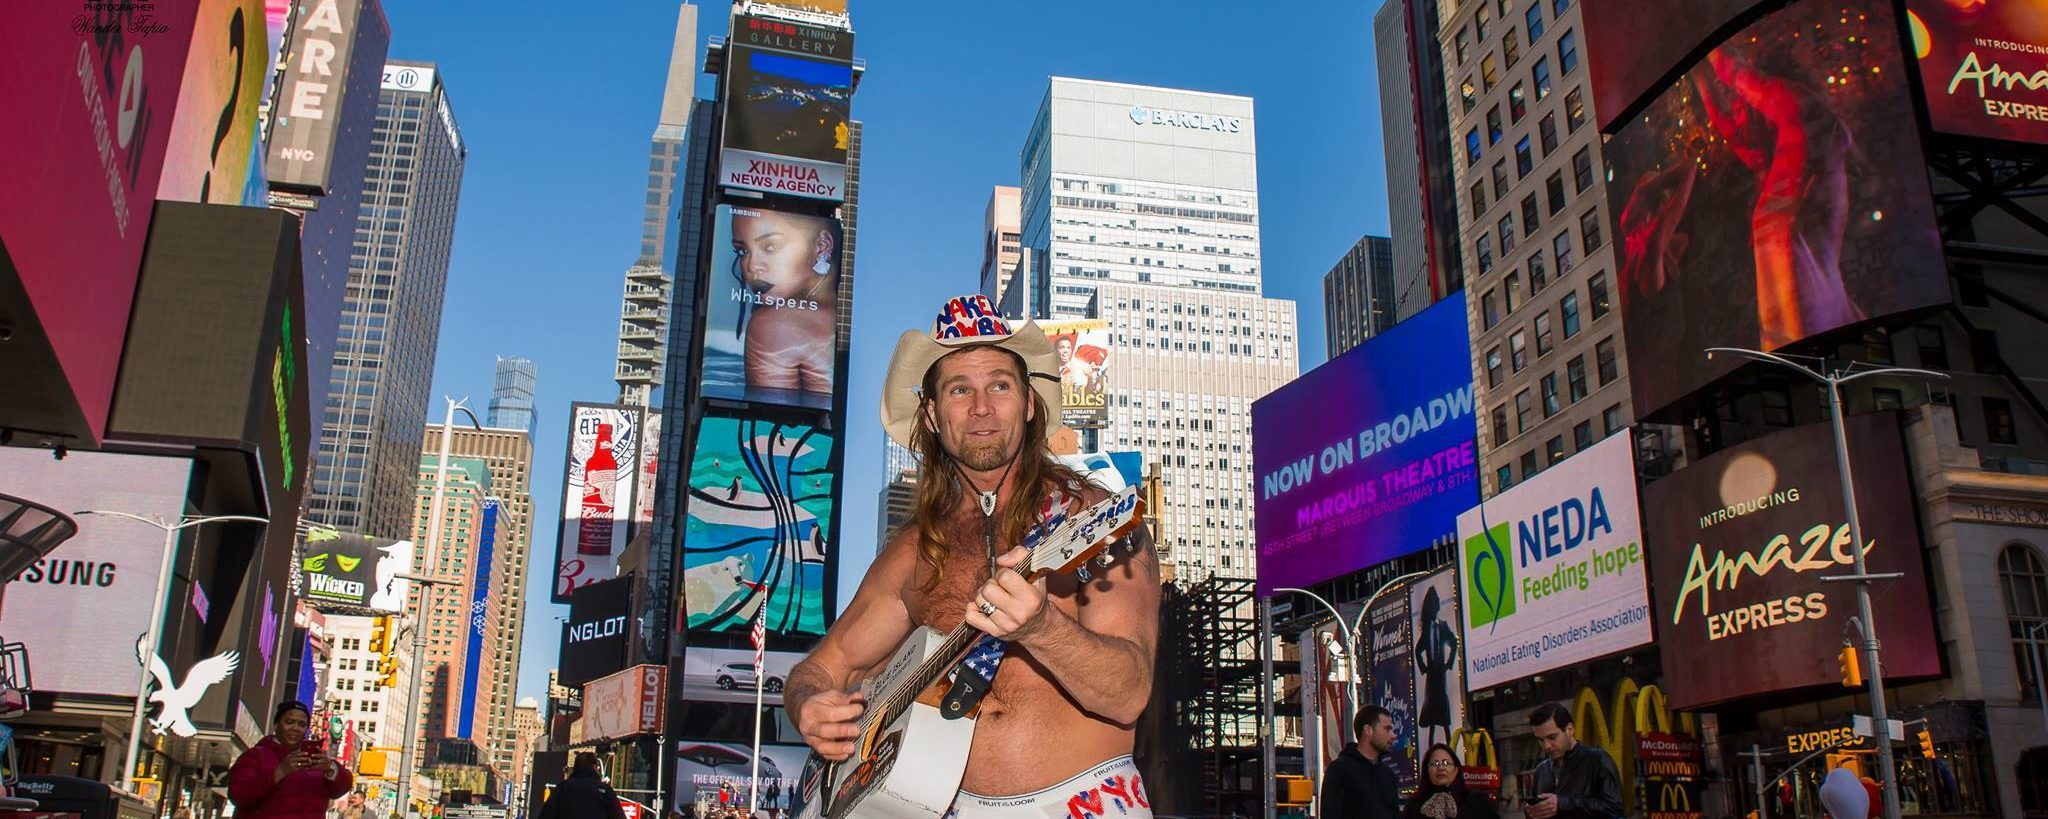 Naked Cowboy Migrates South for the Winter